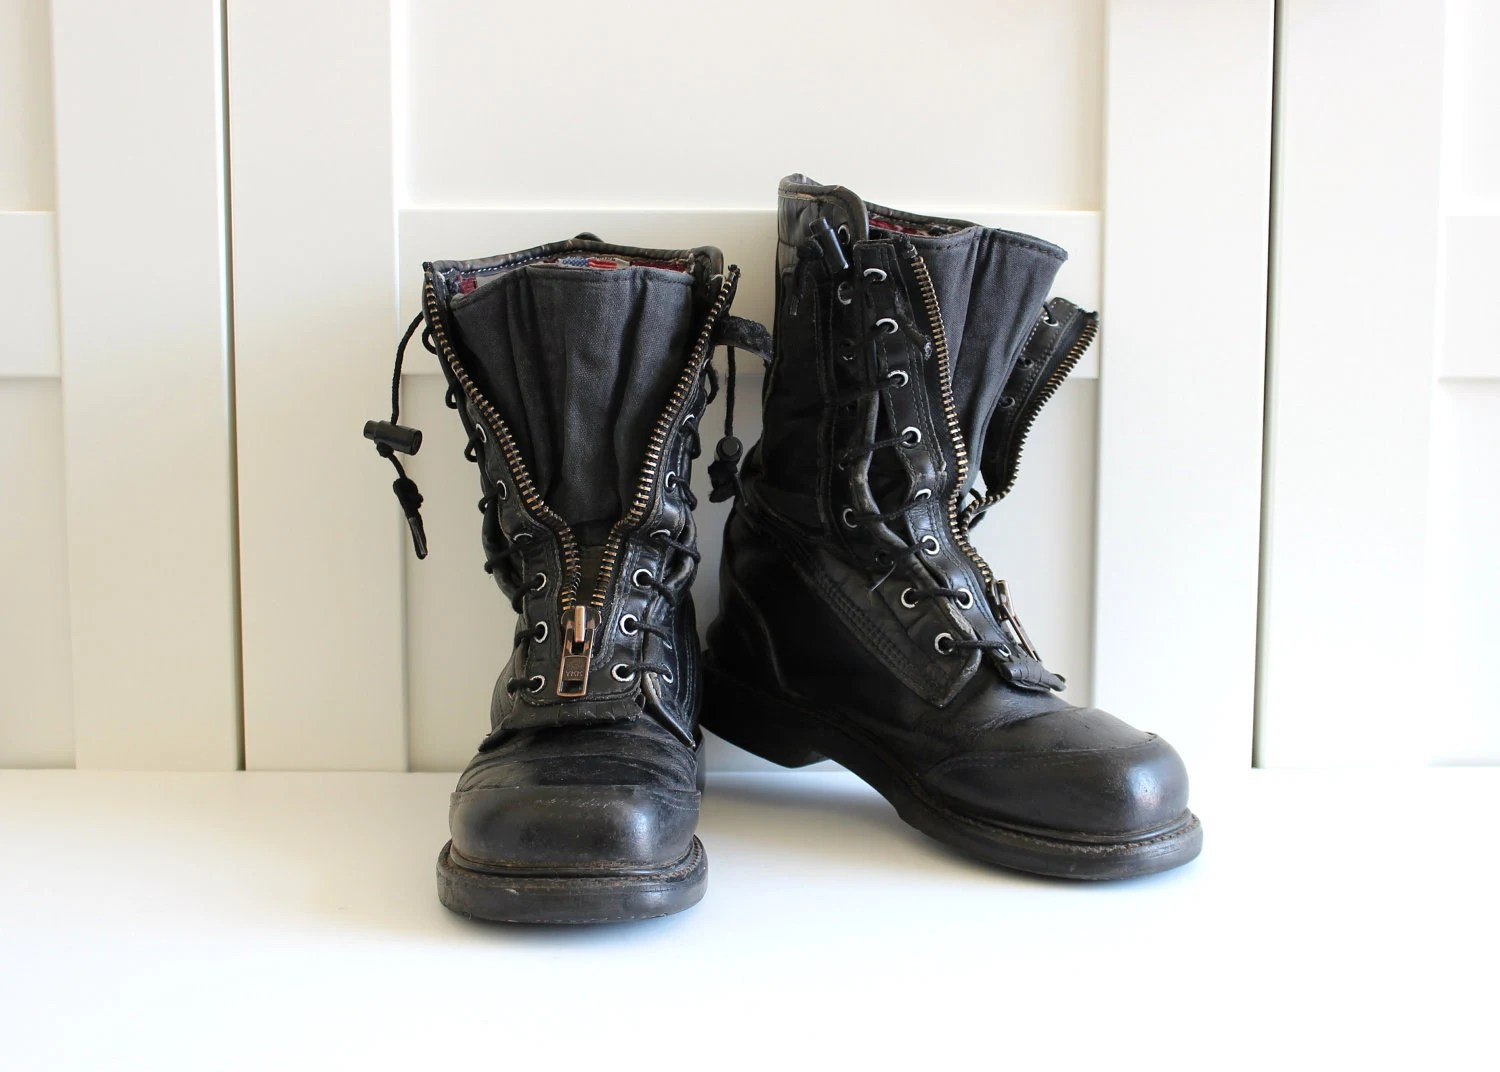 Womens Lace Up Boots No Zipper With Creative Photos In